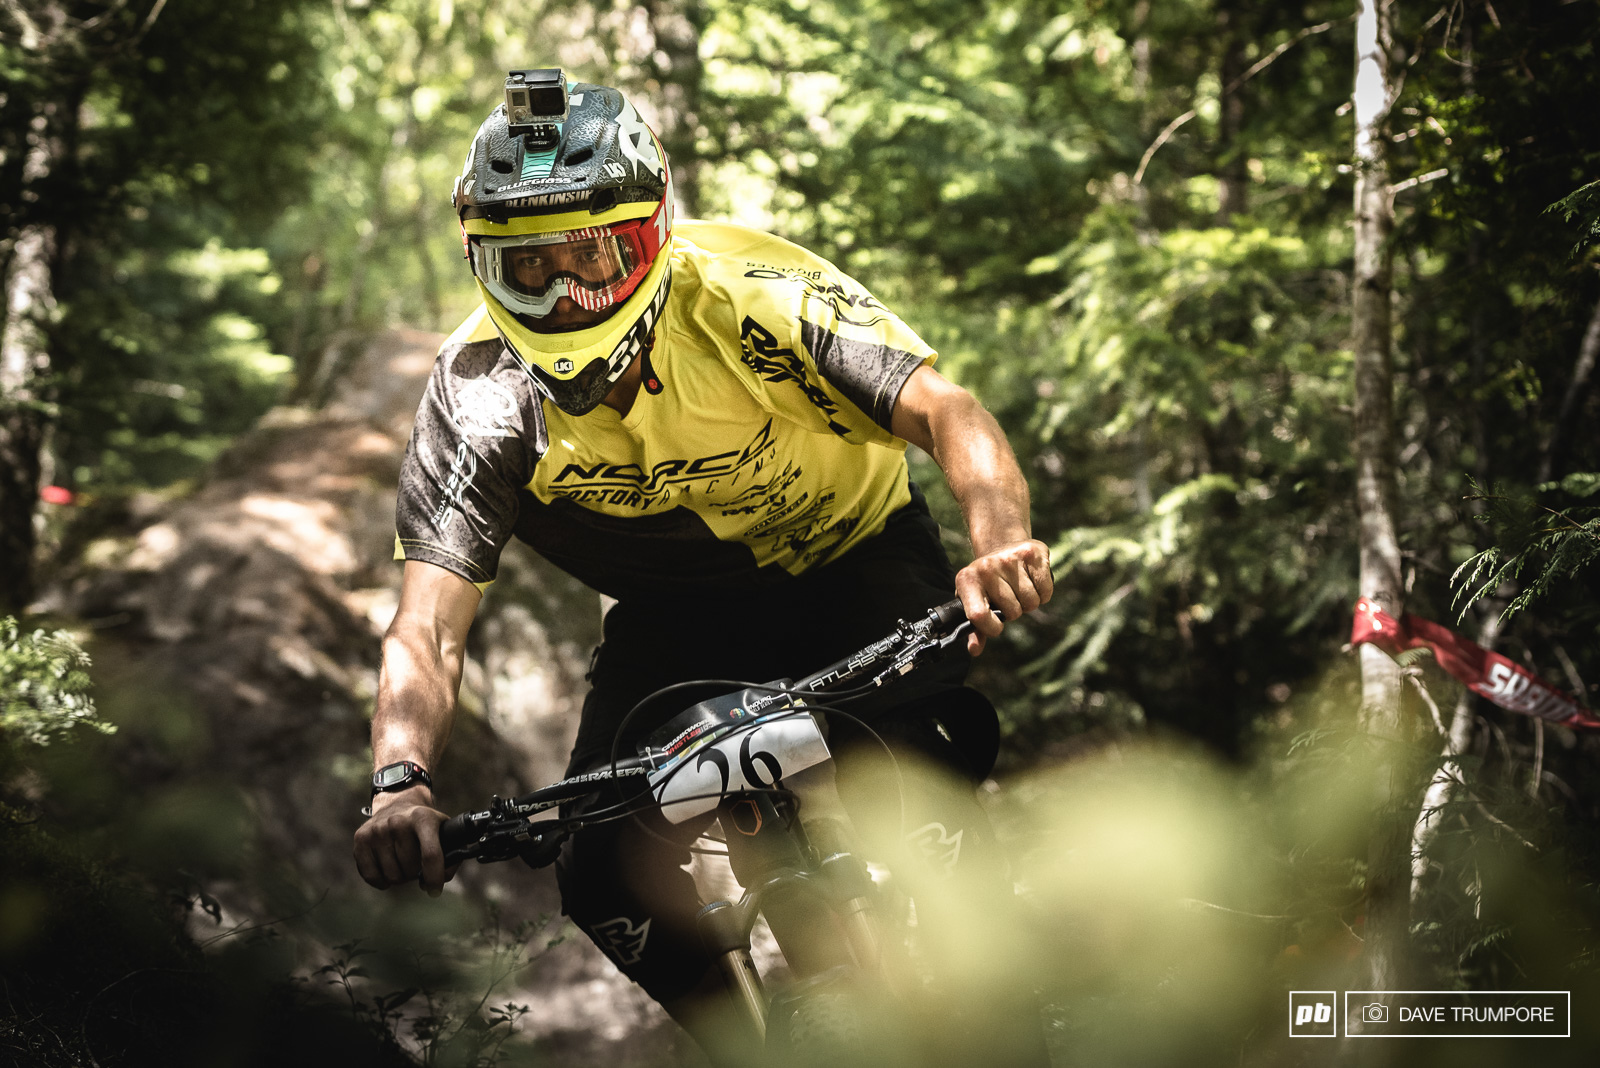 Sam Blenkisop seems to be enjoying the steep and loose conditions here in Whistler. While adding to the fun and just out of view in this photo is his very new and yet unseen Norco 29er.